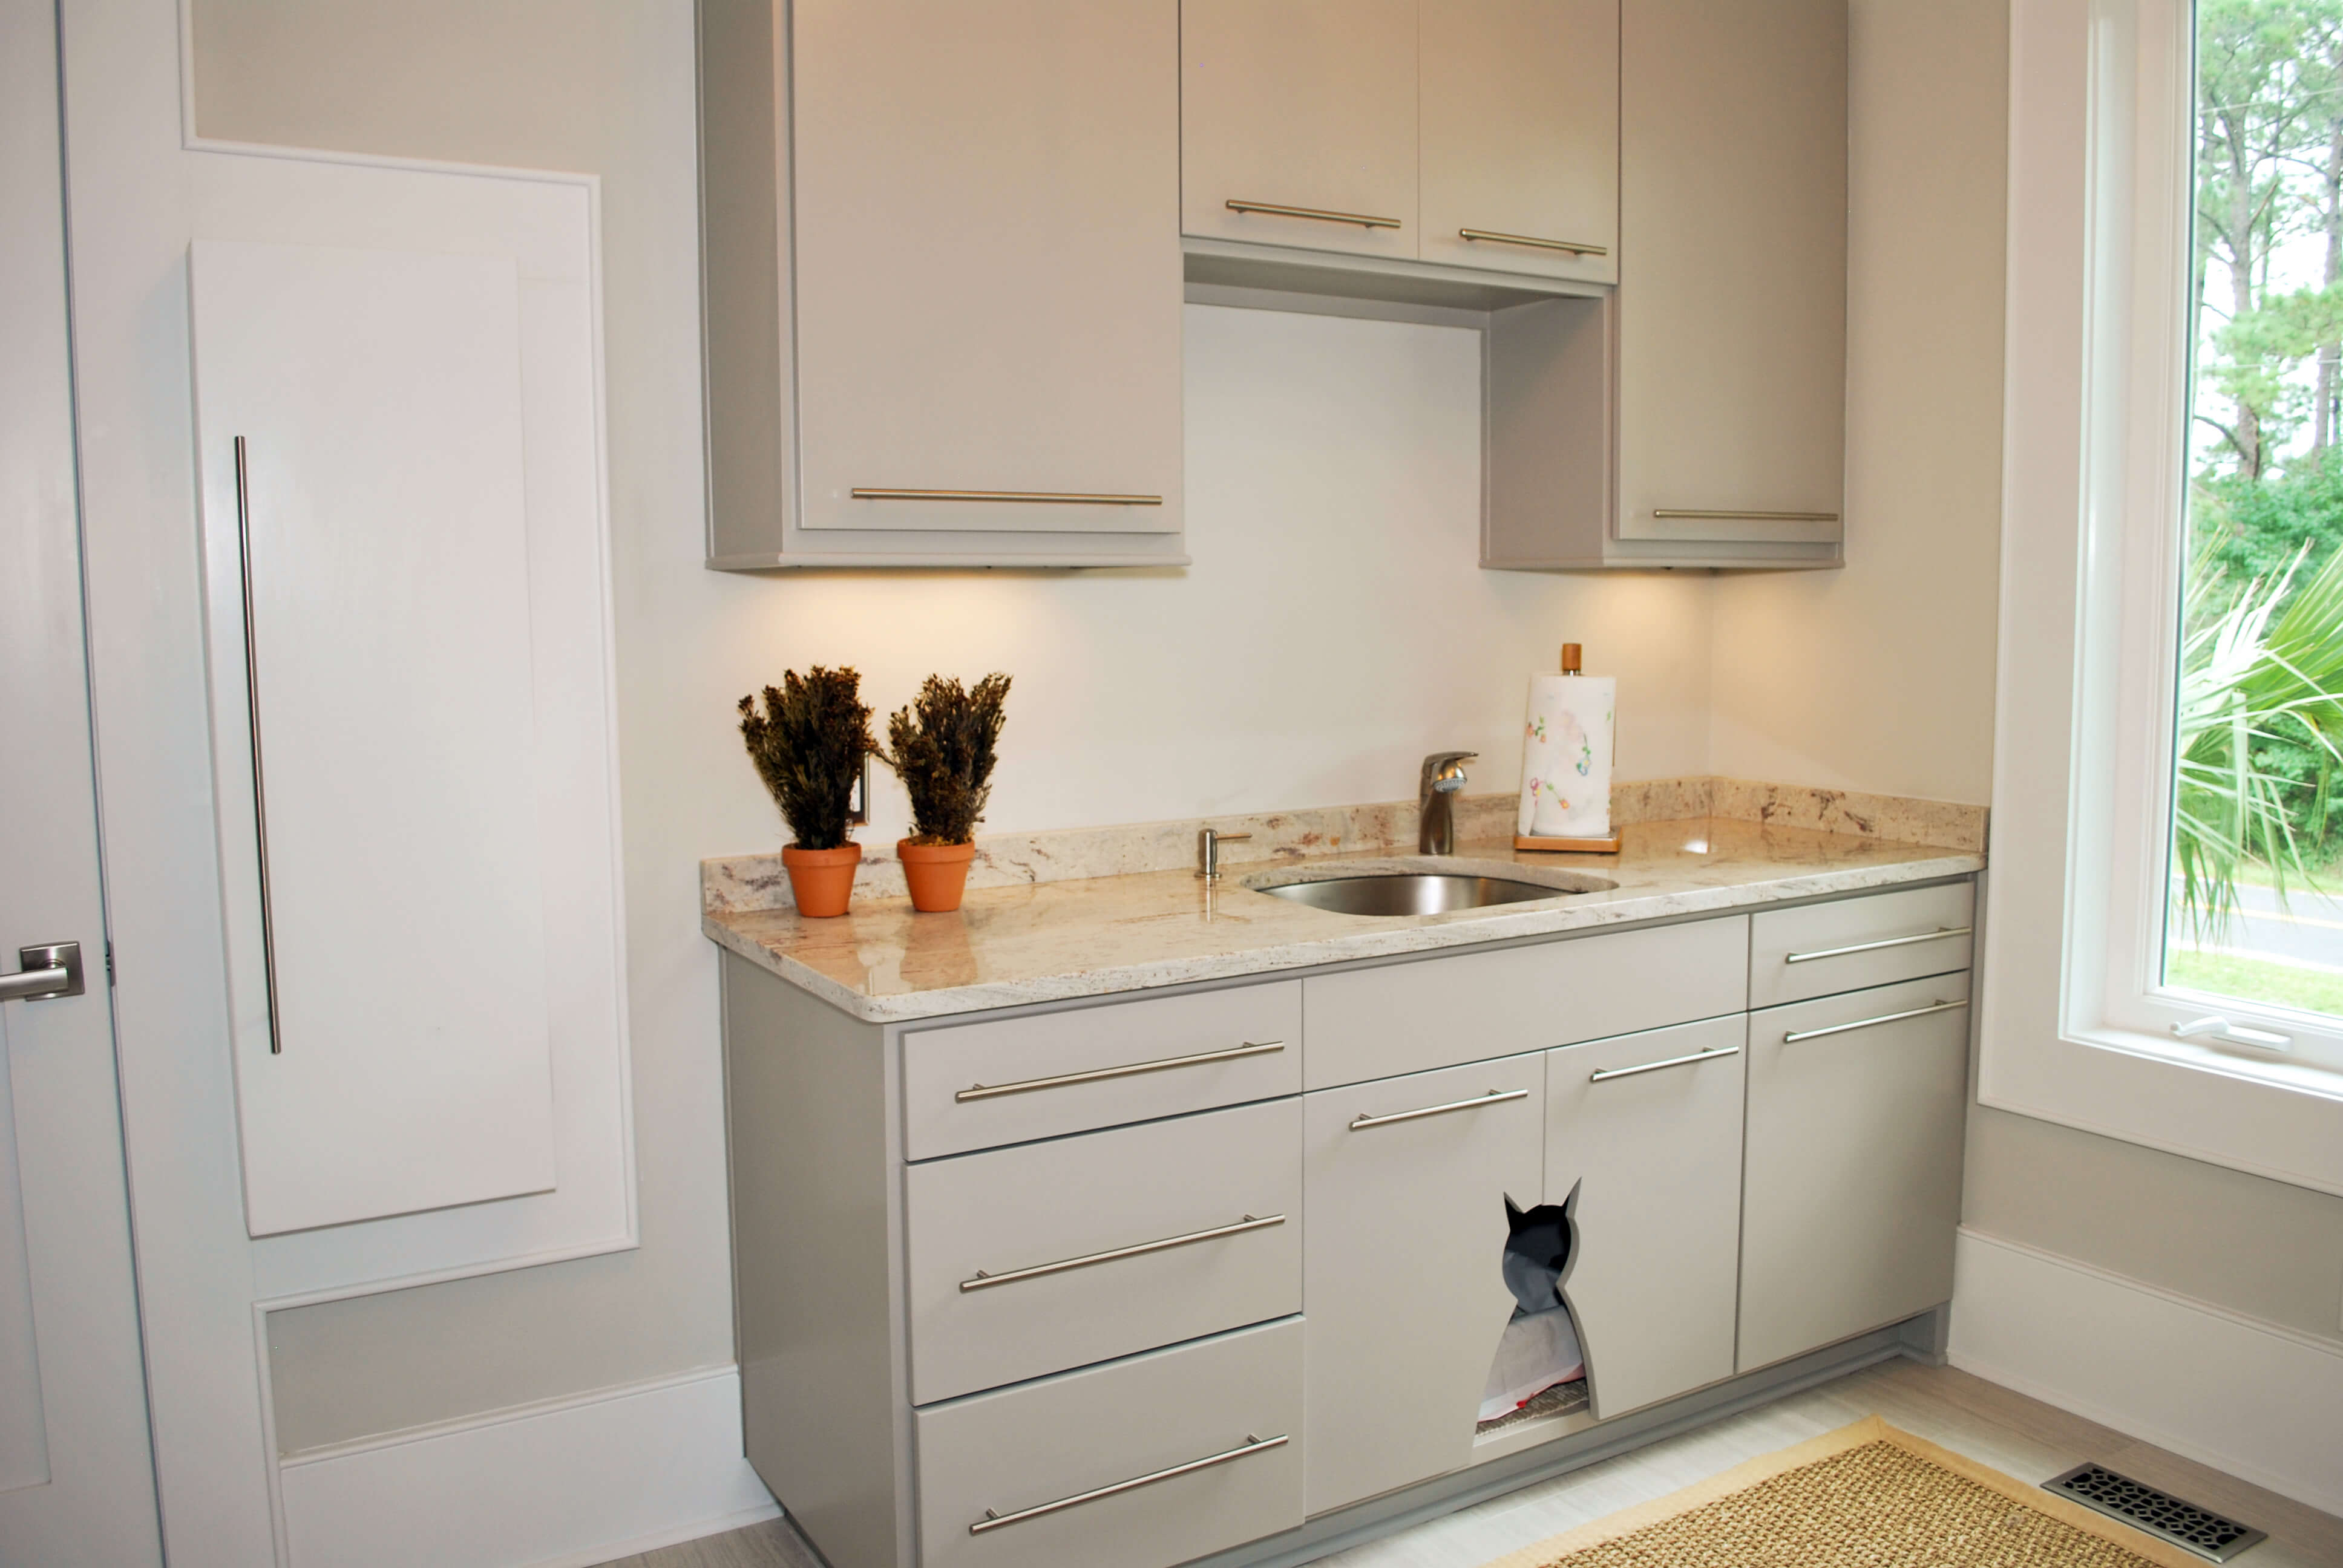 Laundry room features similar cabinetry as the kitchen, with its own marble countertops and sink, with in-cabinet litter box with cat shaped entryway.